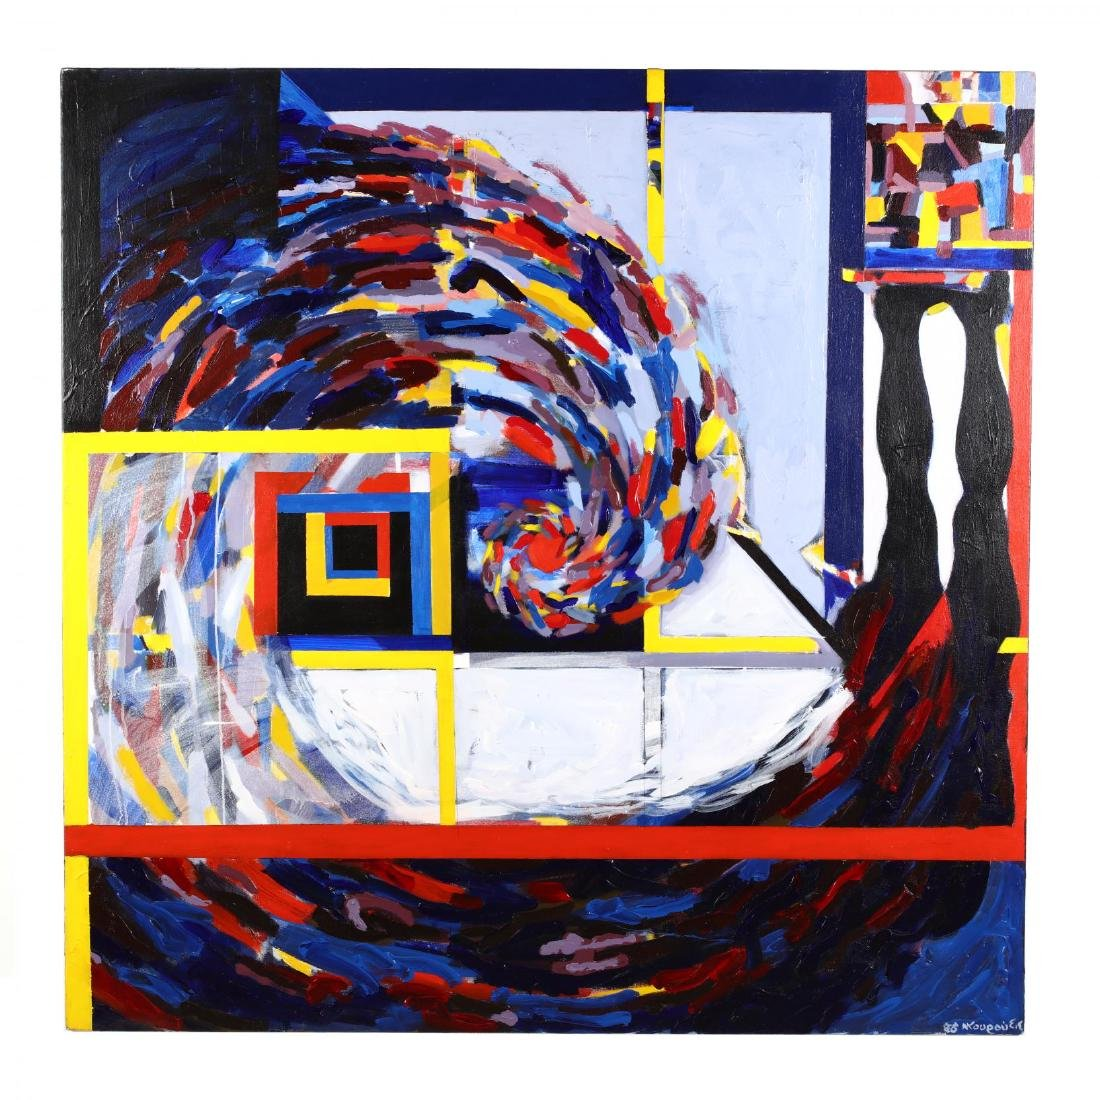 Greek or Cypriot Modernist Abstract Painting